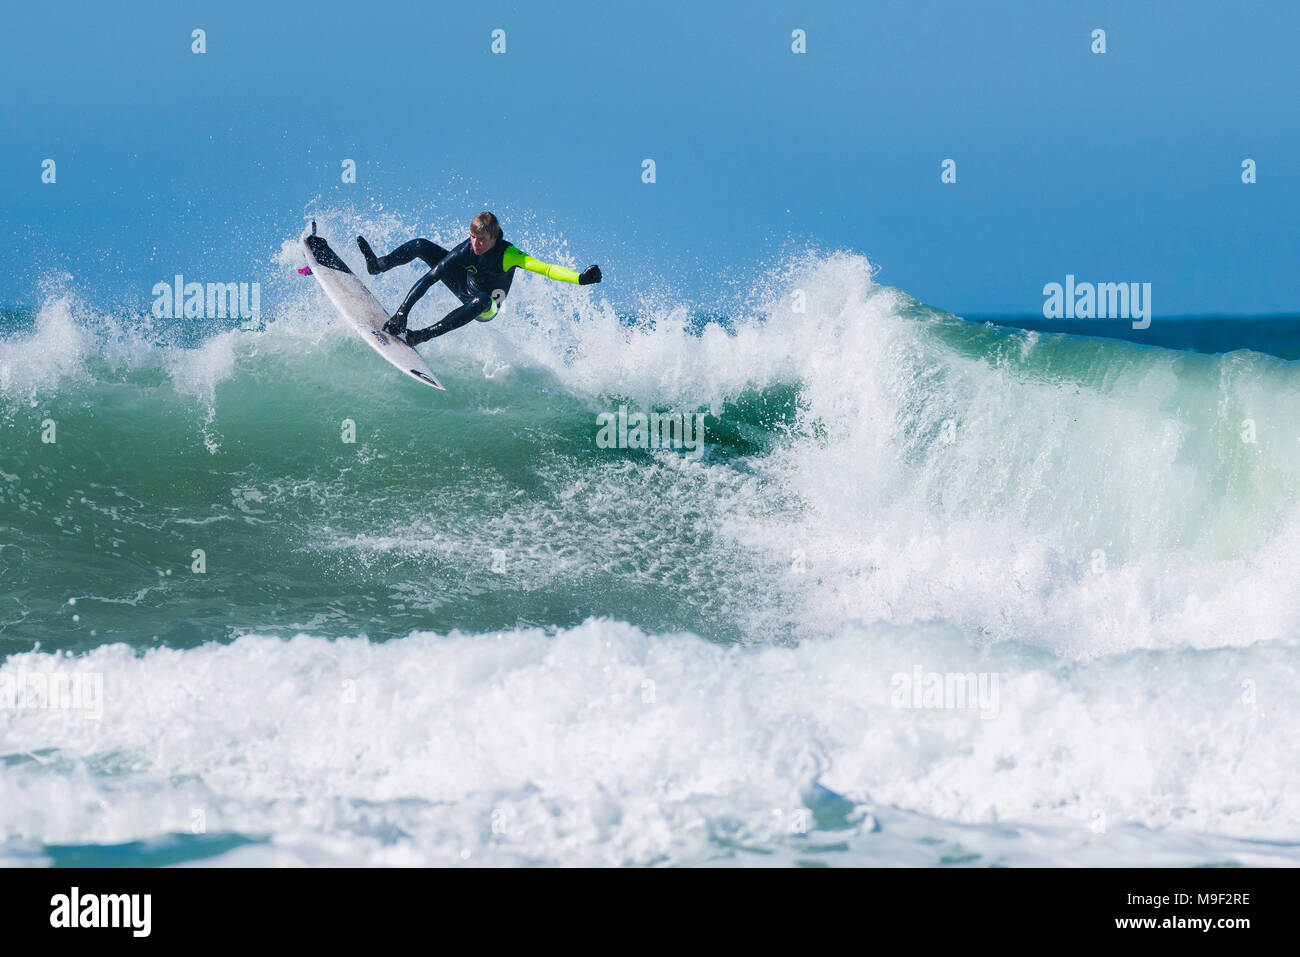 Newquay, Cornwall, UK. 25th March 2018. Spectacular surf action and superb weather conditions at Fistral in Newquay, Cornwall. Credit: Gordon Scammell/Alamy Live News - Stock Image